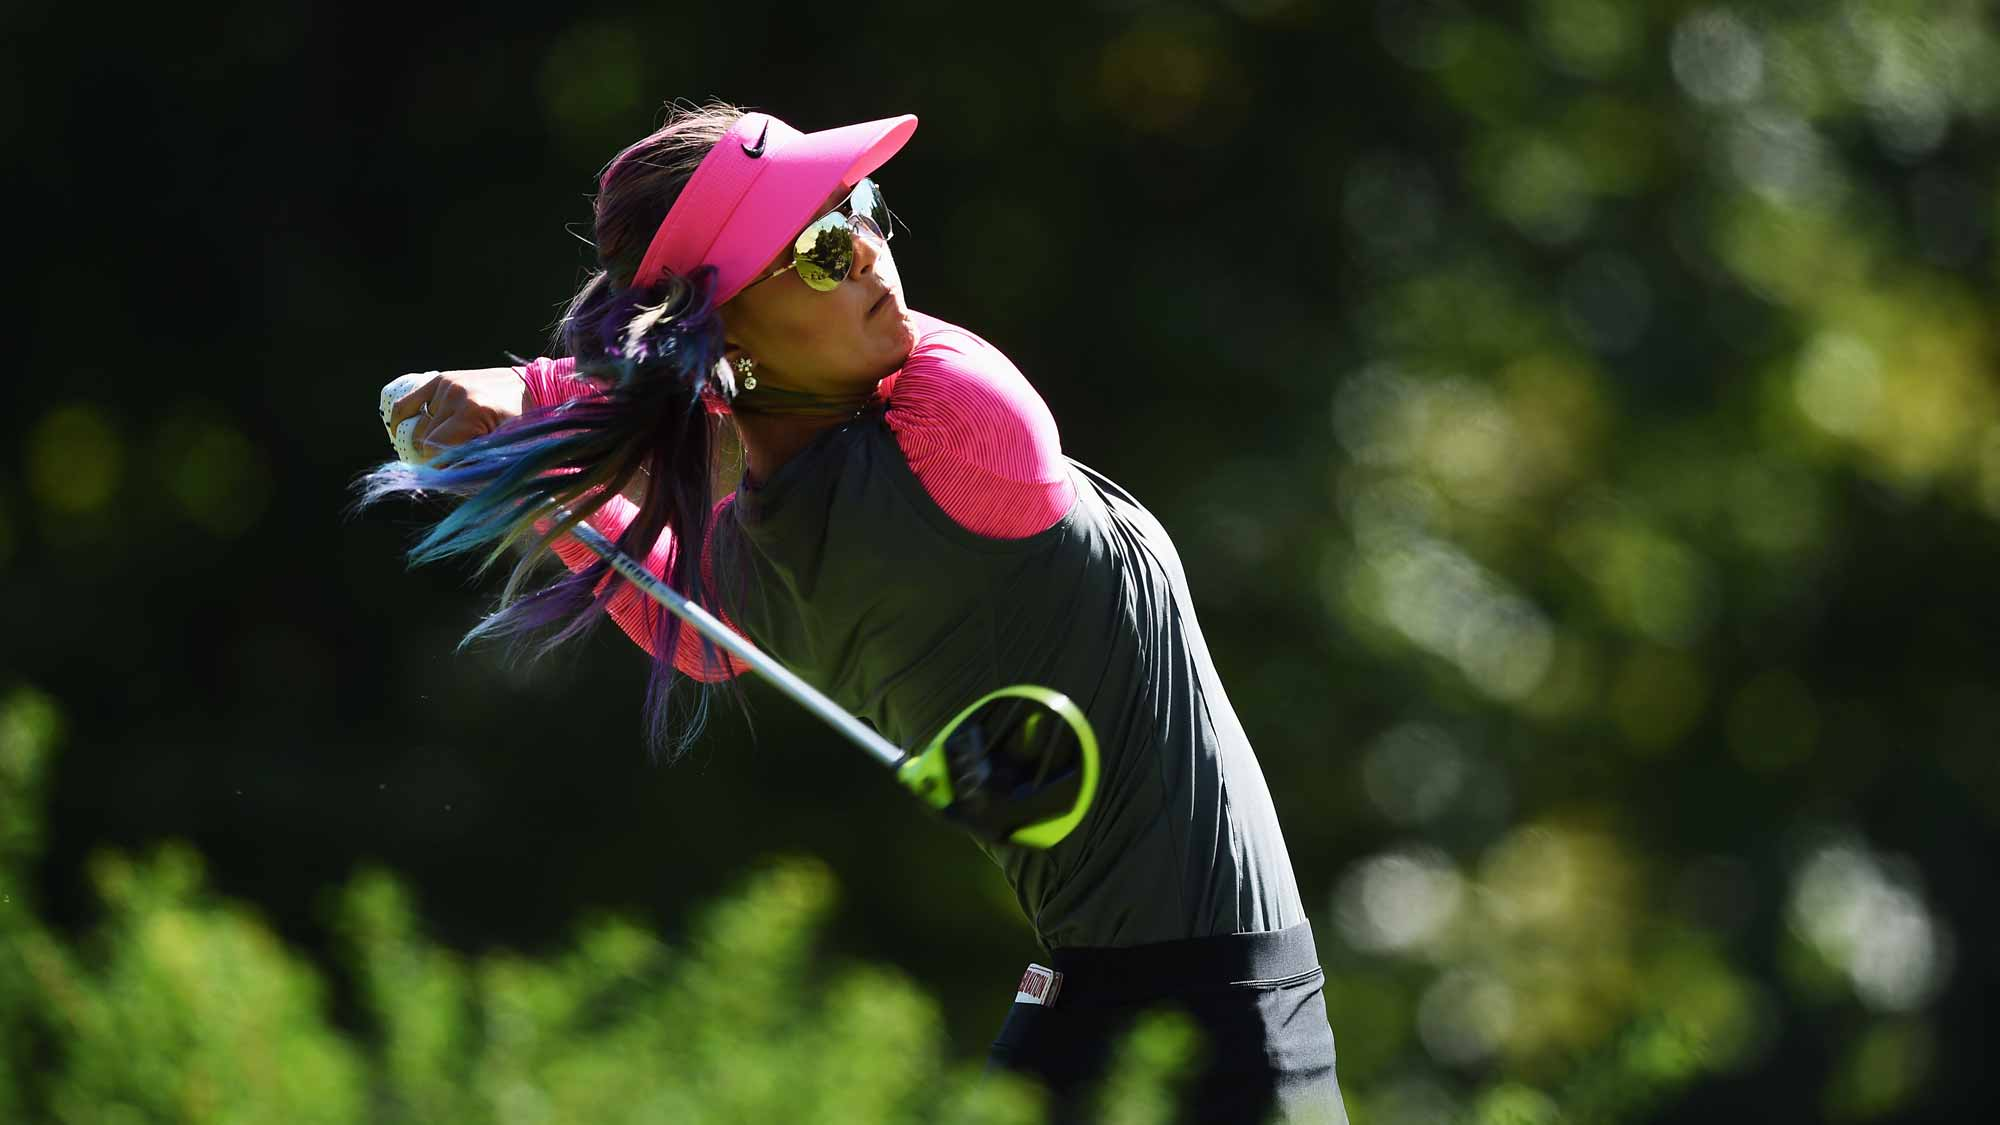 Michelle Wie during the third round of the Evian Championship